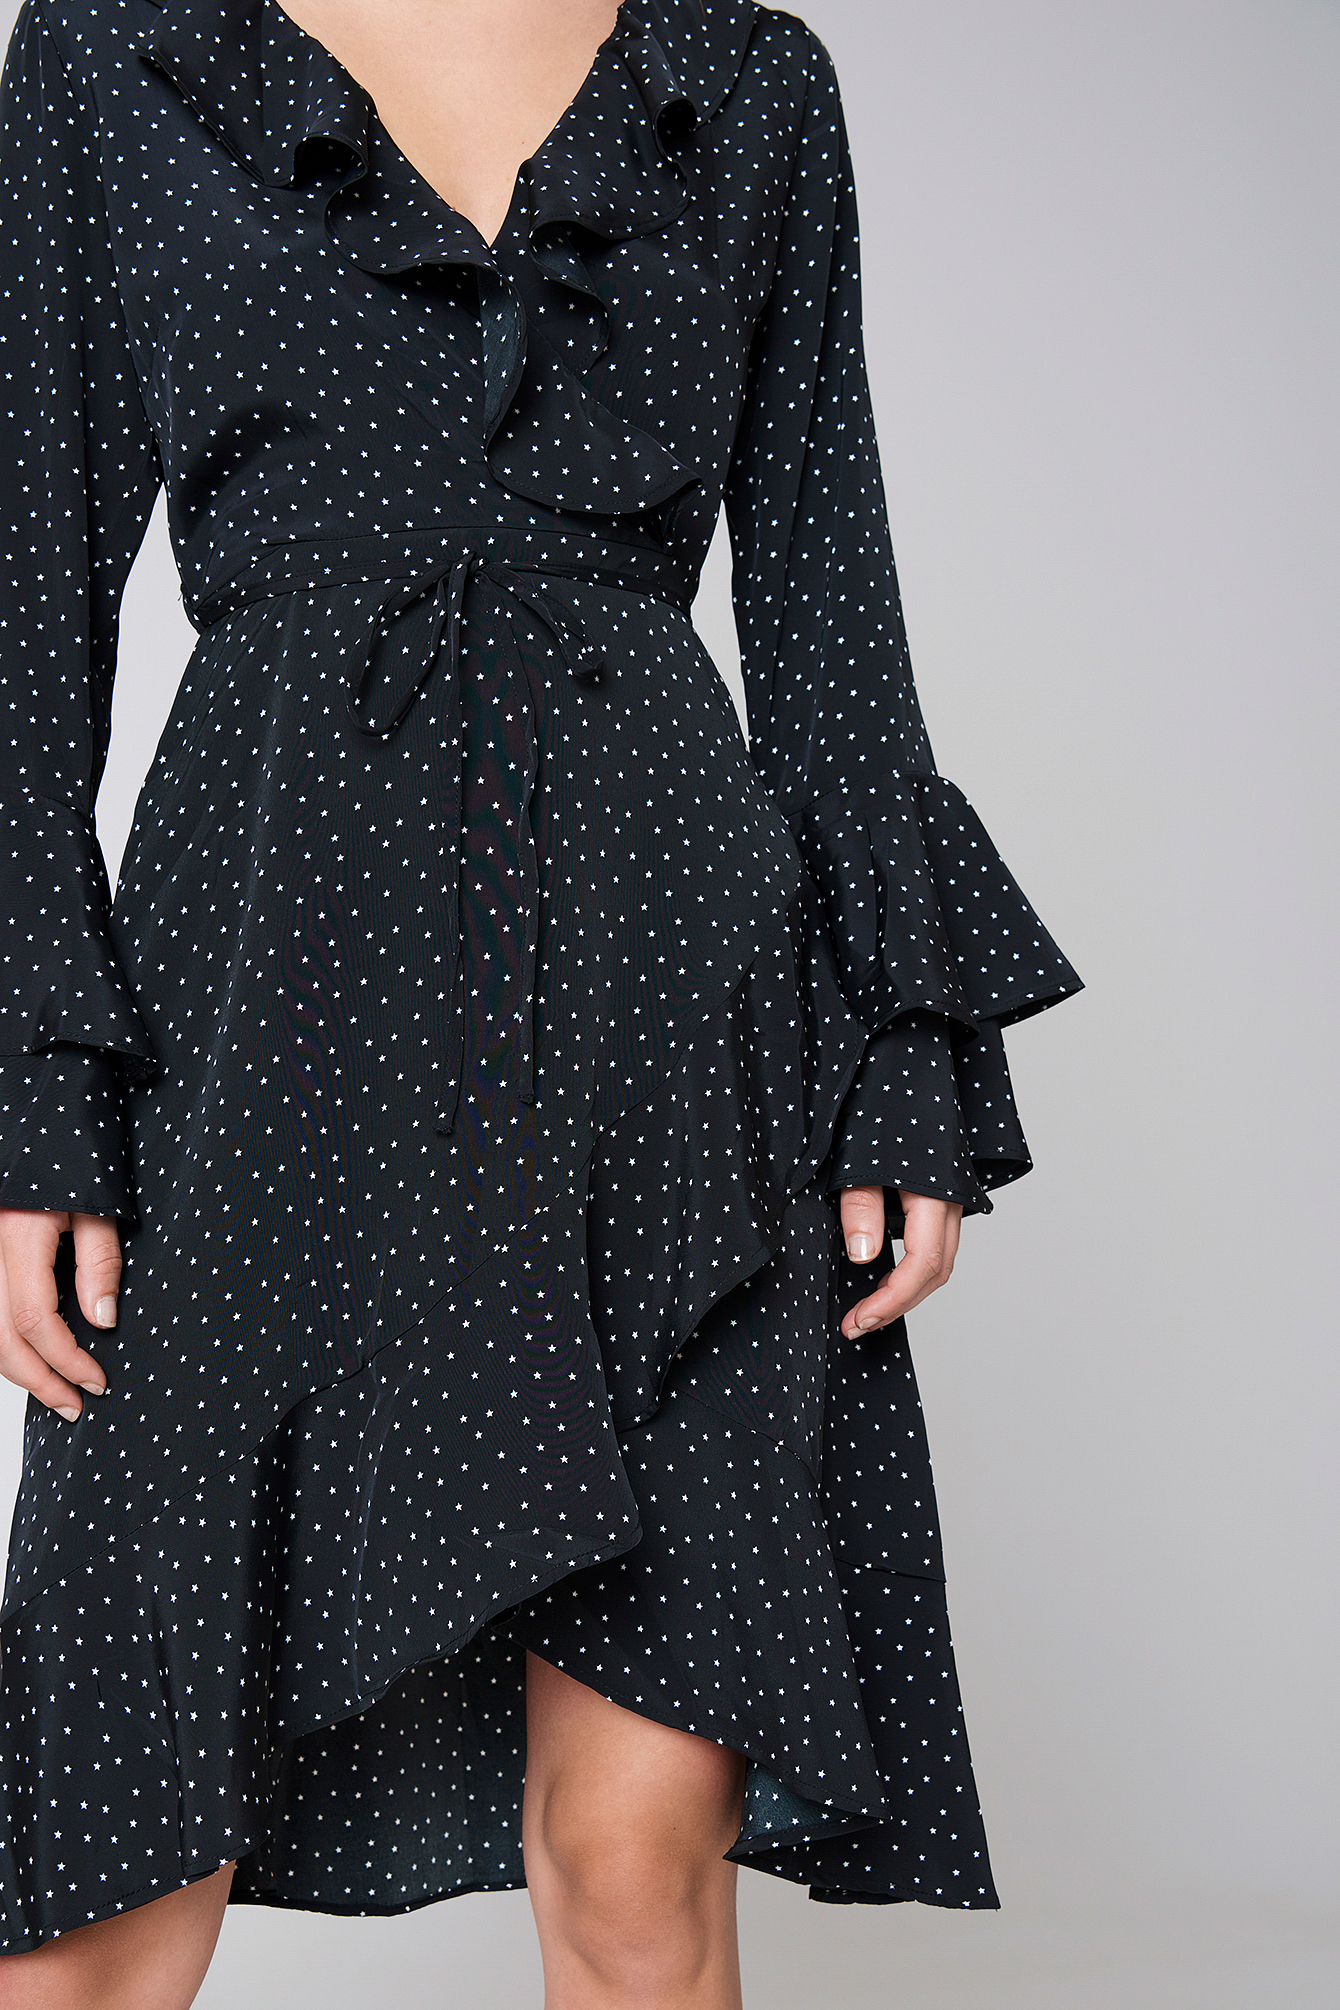 Orion Star Print Dress NA-KD.COM